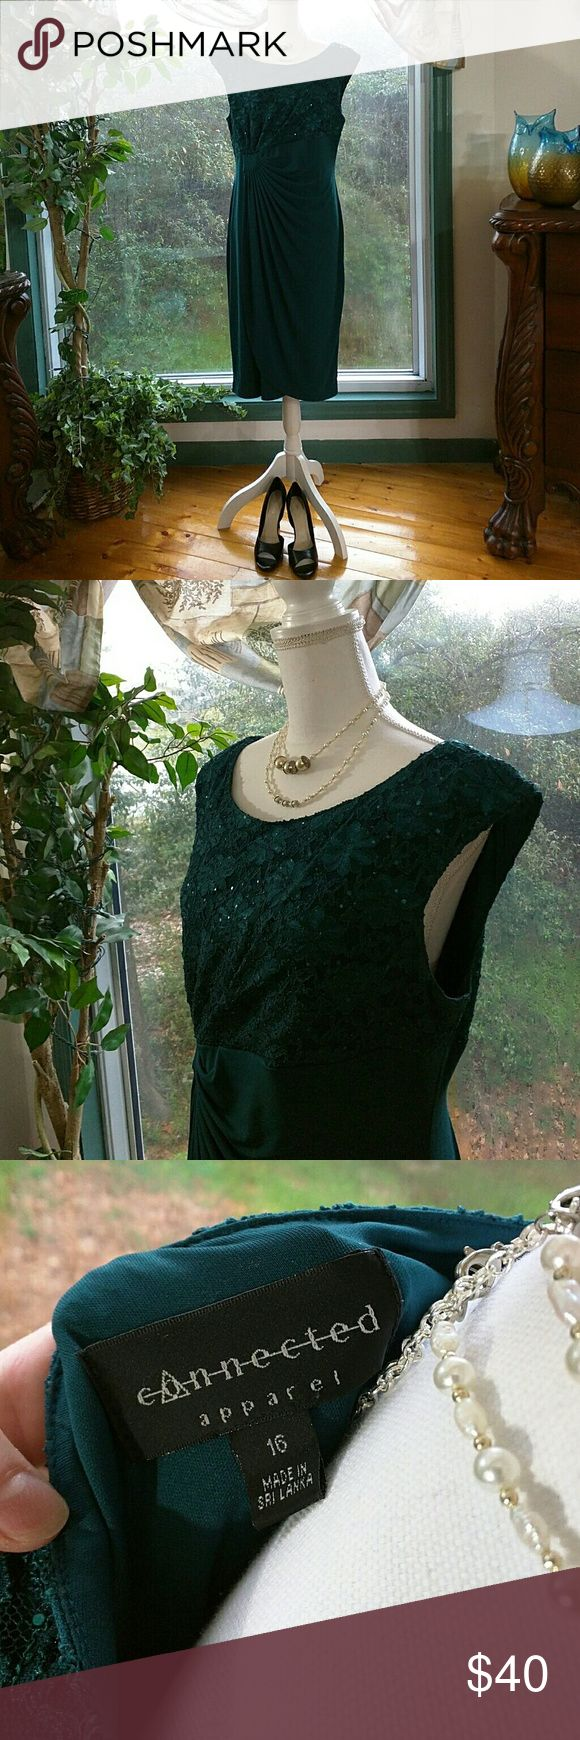 """Connected Apparel Sequined Faux Wrap Dress Dark Teal Green Top of dress sequined lace  Bust 19"""" across front Whole Length of Dress is 40"""" ??RUNS SMALL...More like a 14 Nylon Polyester Spandex blend Connected Apparel Dresses Midi"""